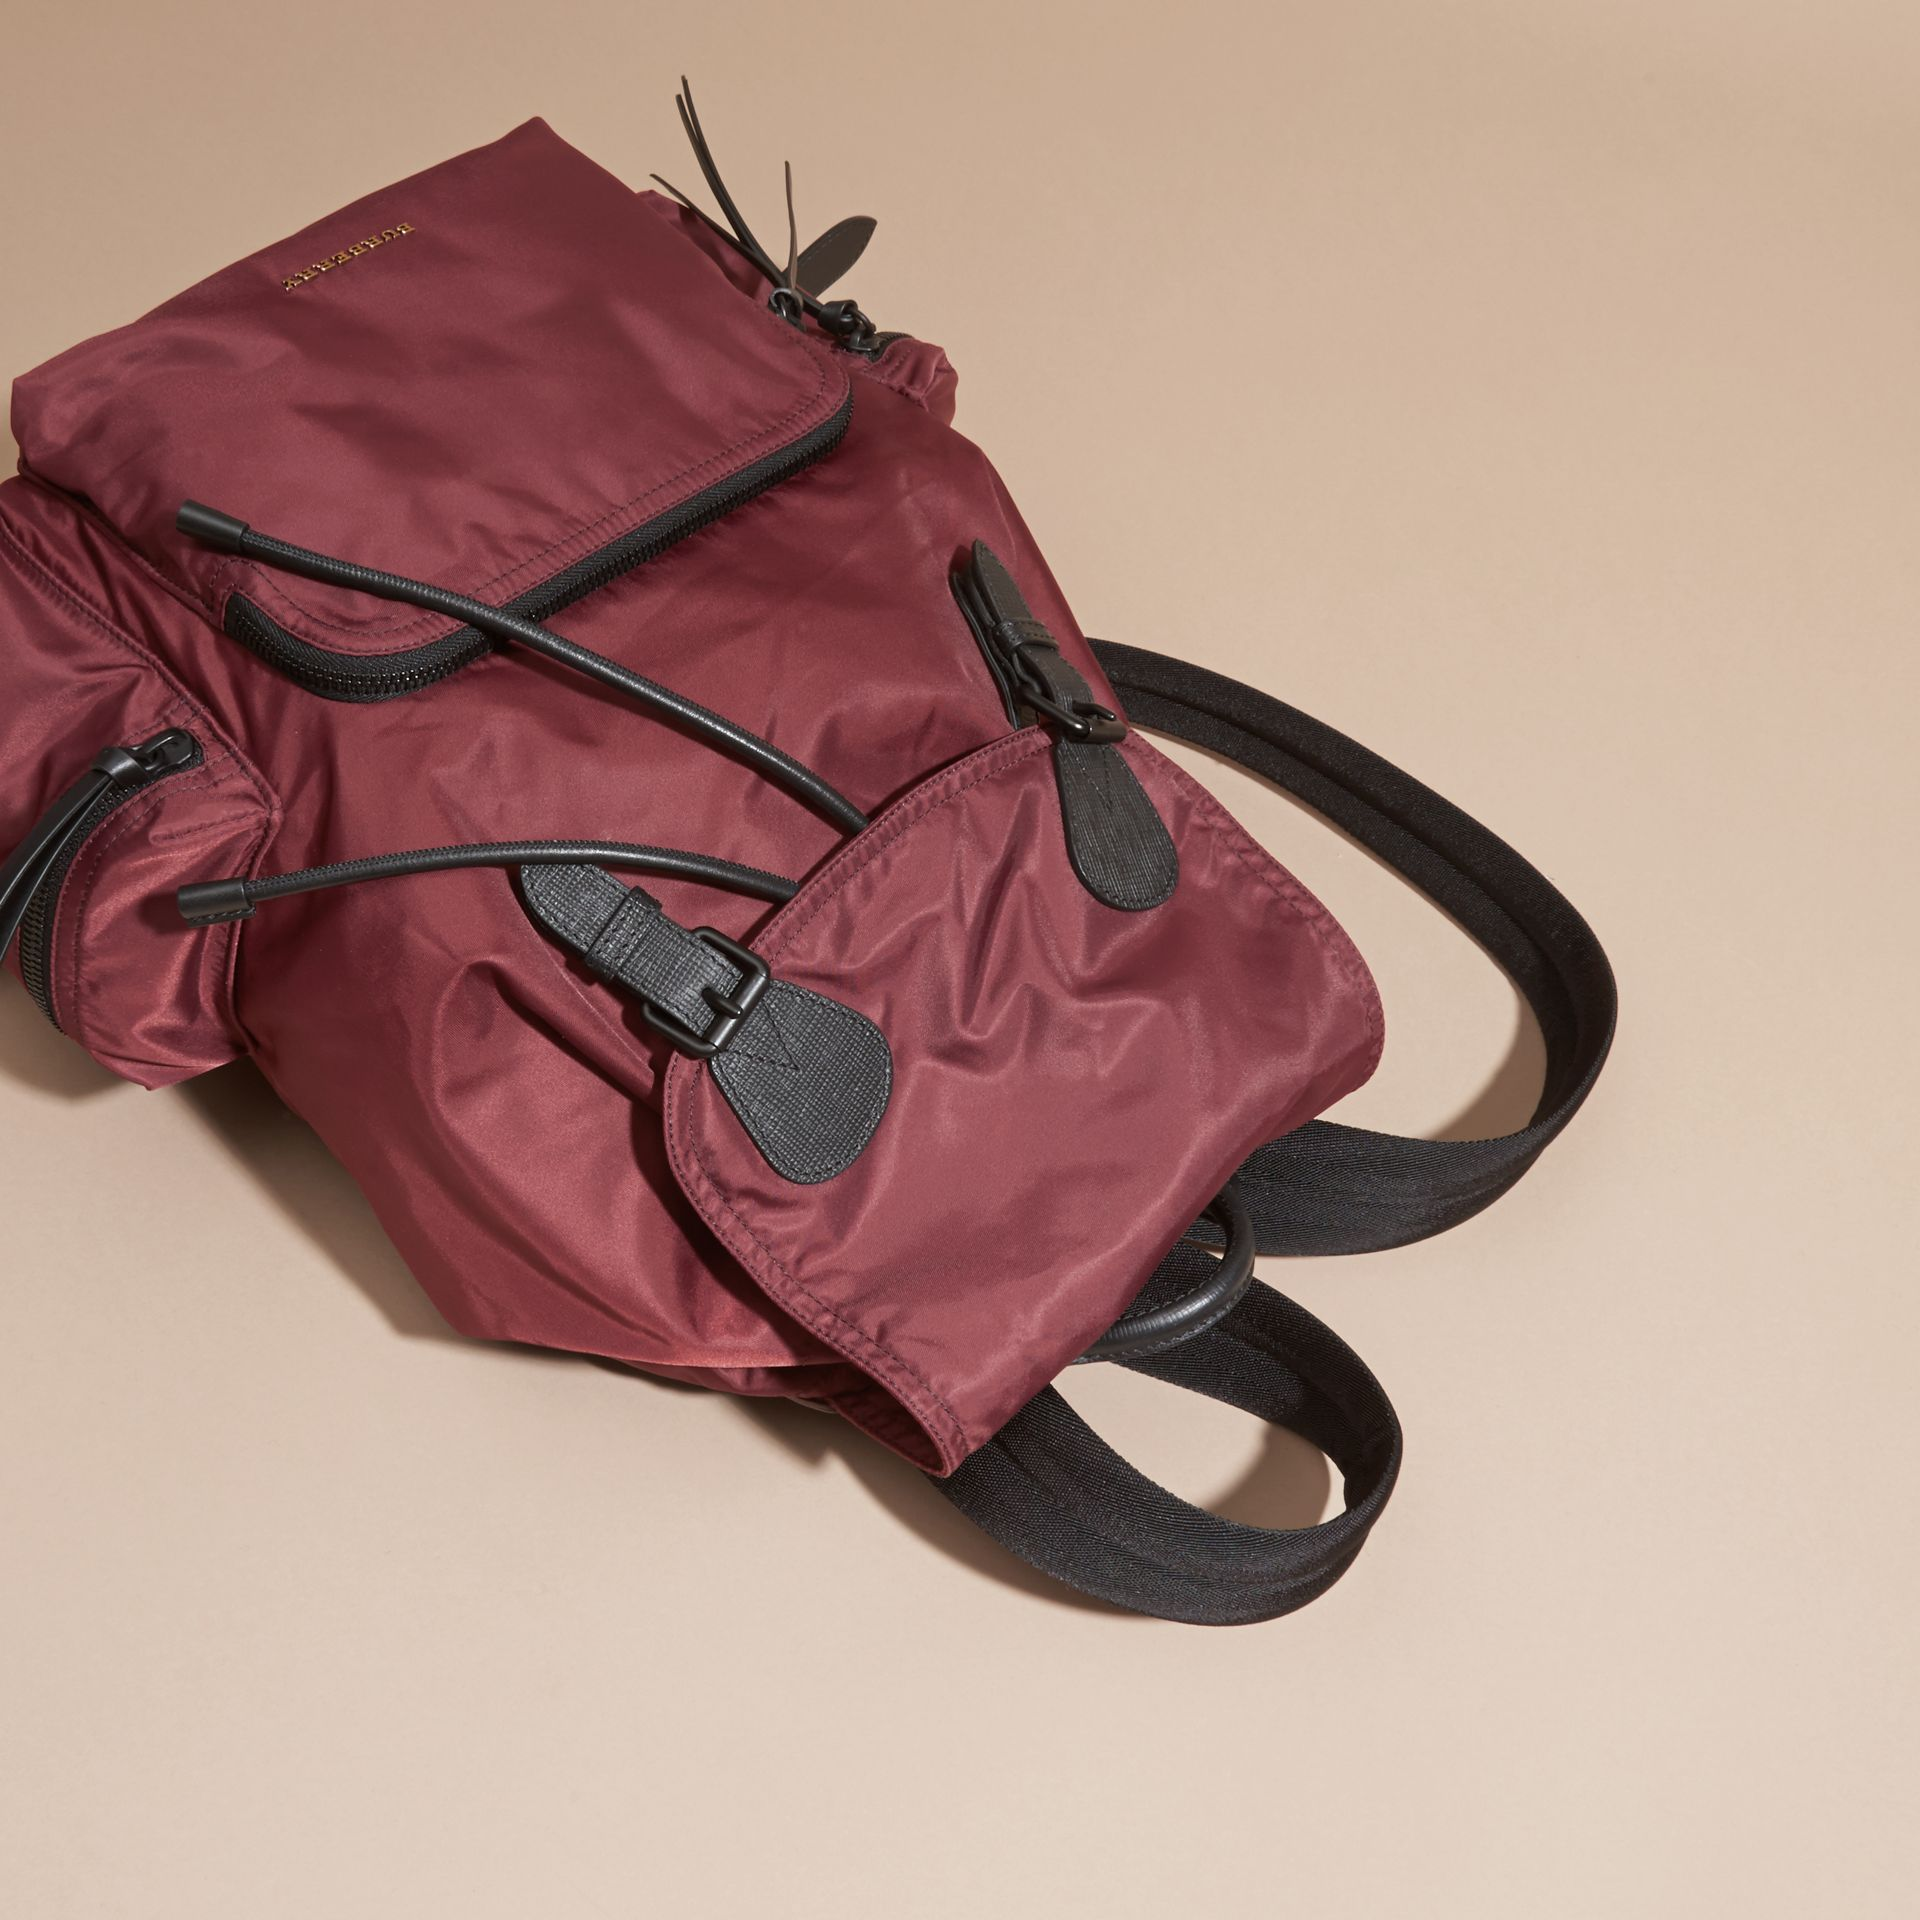 Rouge bourgogne Grand sac The Rucksack en nylon technique et cuir Rouge Bourgogne - photo de la galerie 8